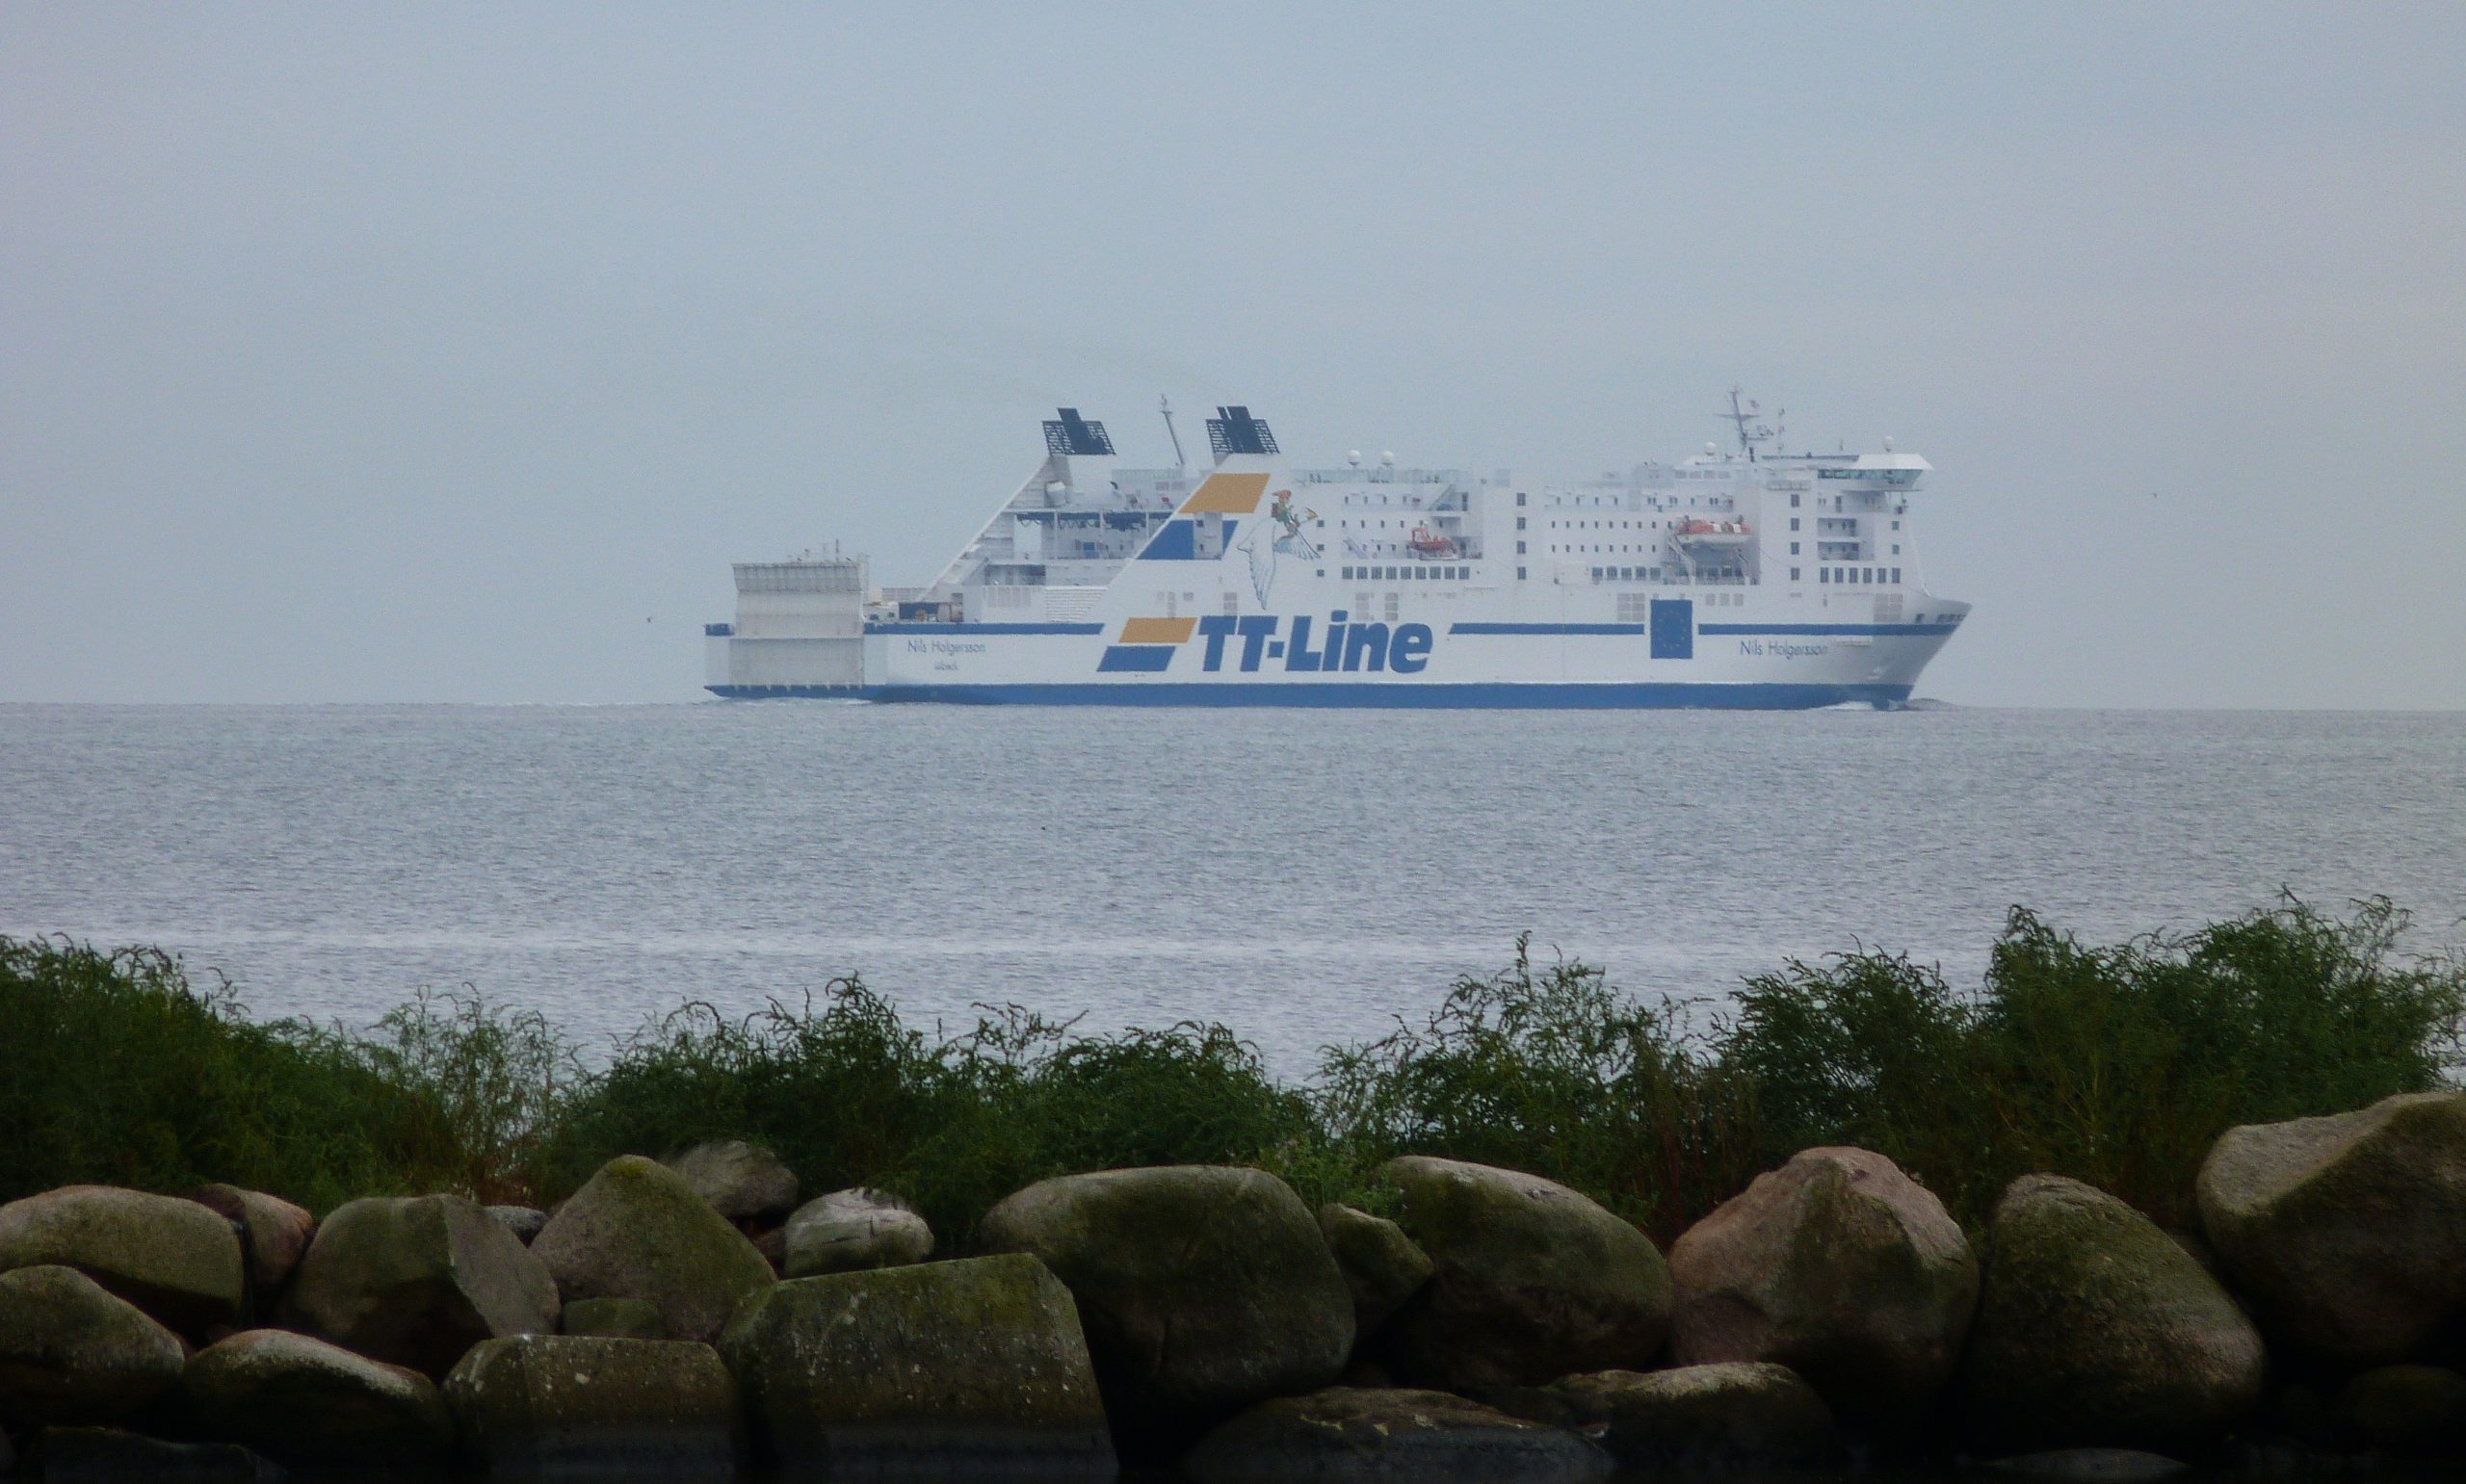 Ferry from Germany to Sweden